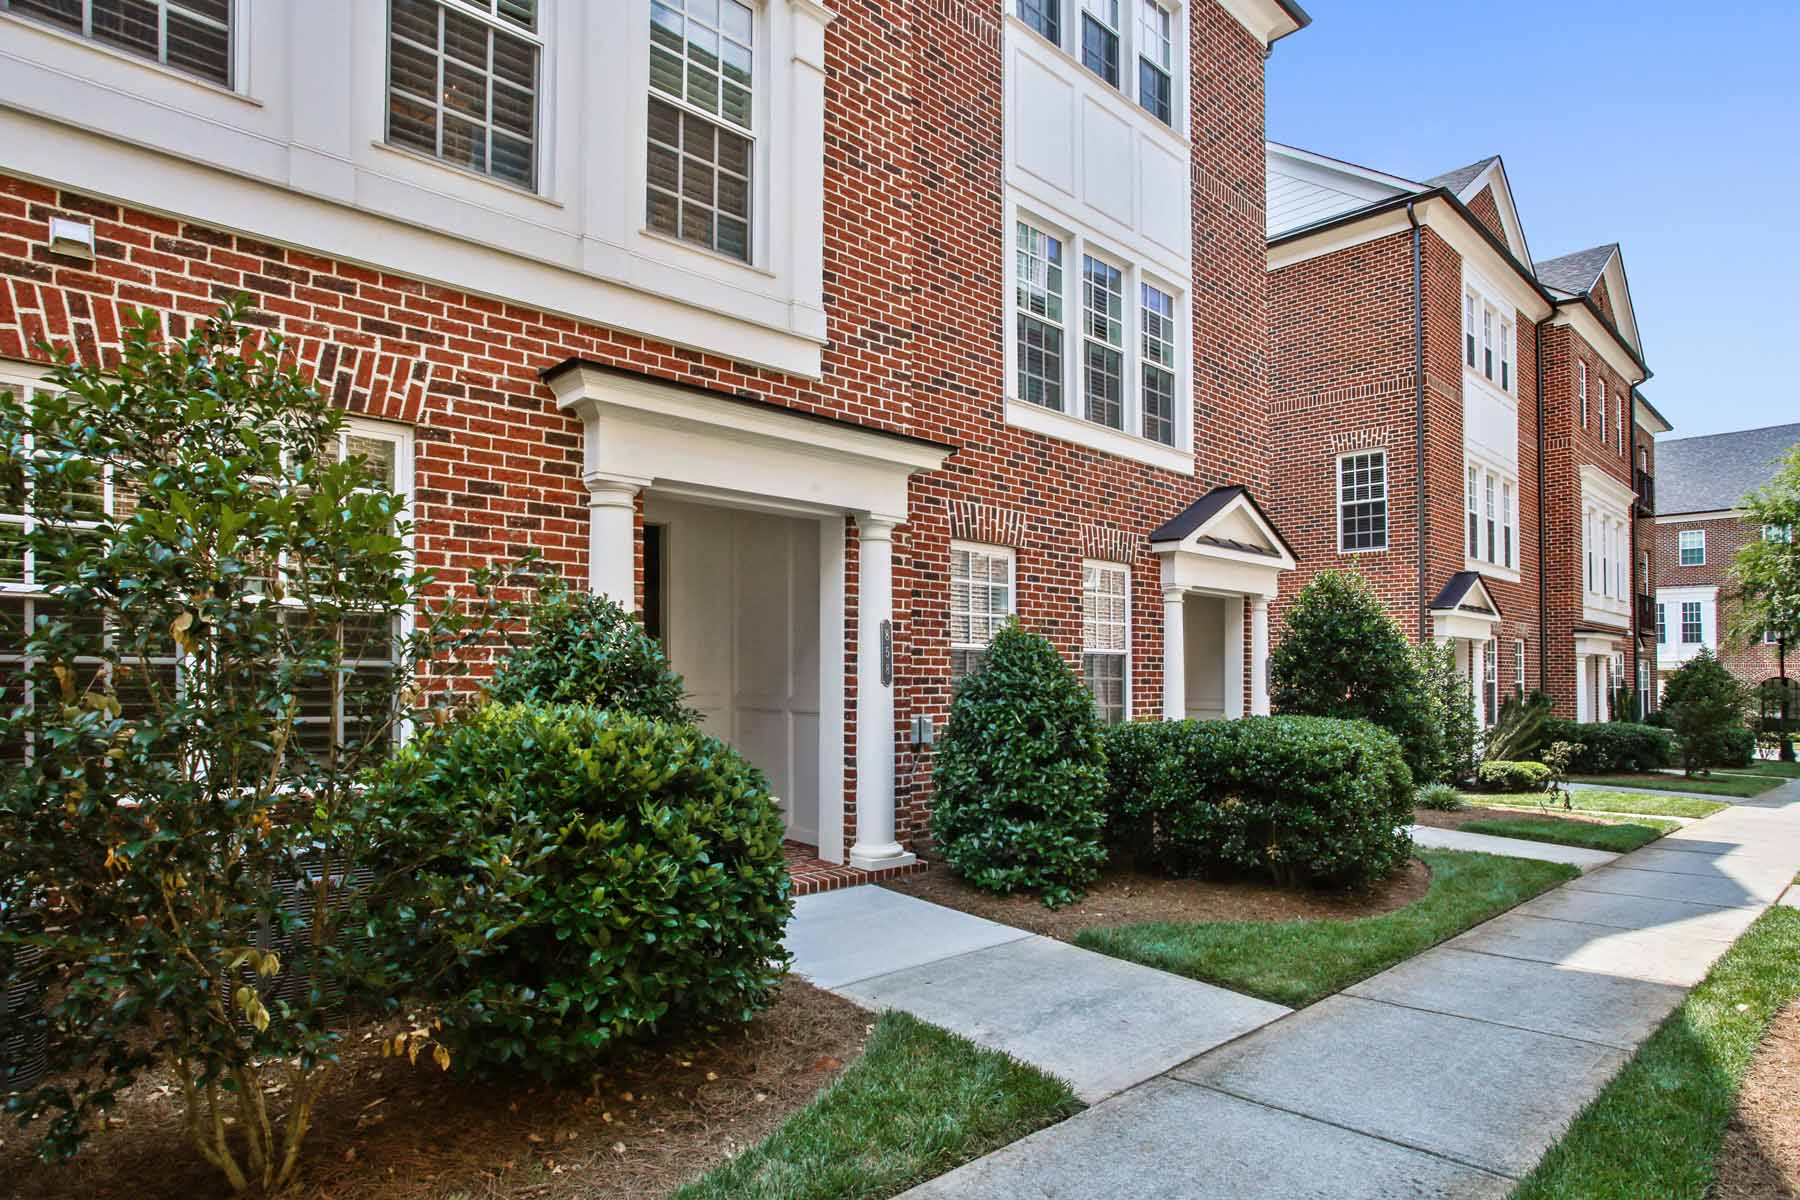 Таунхаус для того Продажа на Sought-after Lullwater Park Intown Gated Community 858 Lullwater Park Court Atlanta, Джорджия, 30306 Соединенные Штаты